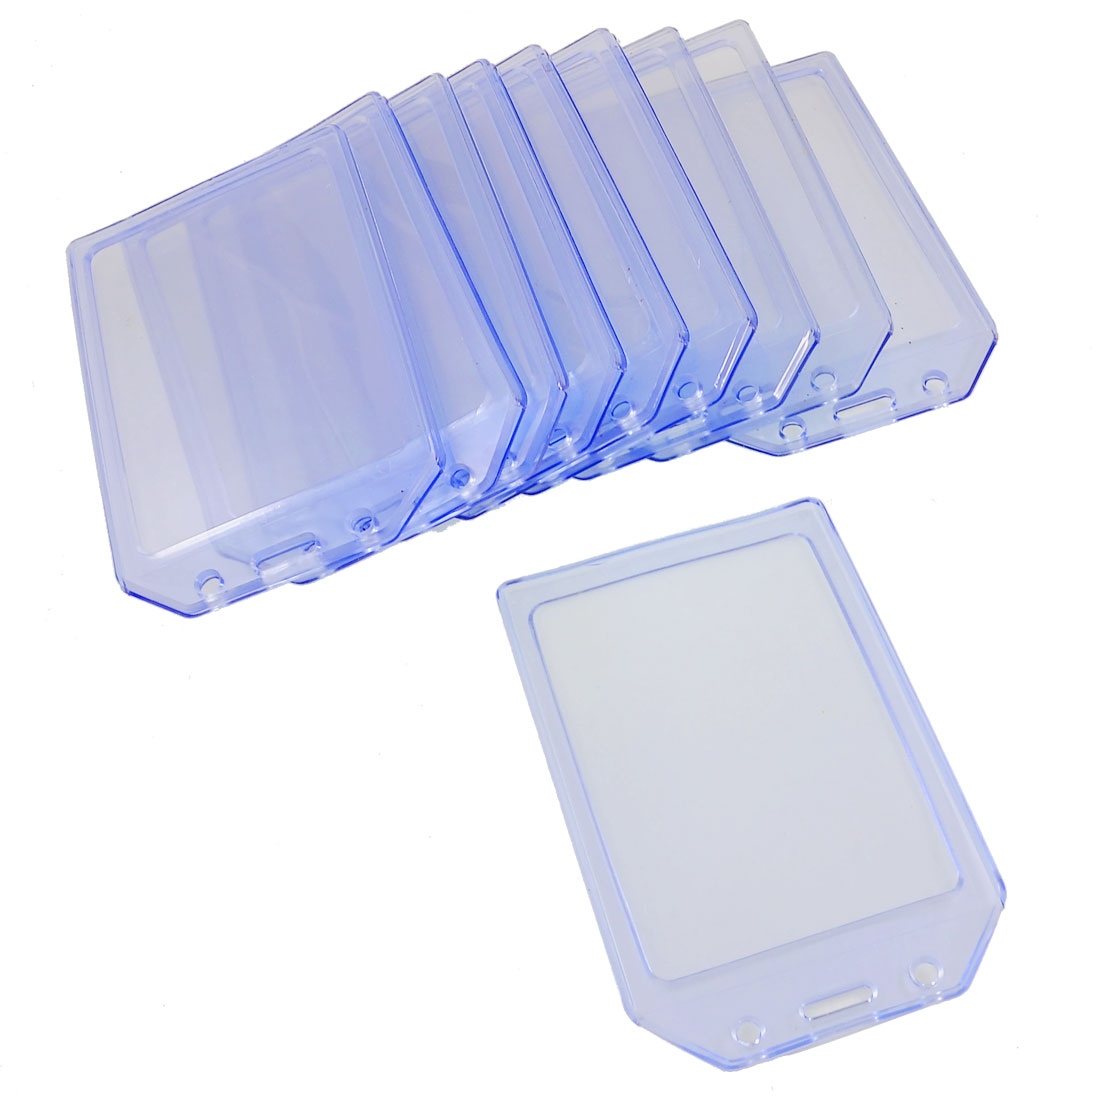 10 Pcs Clear Blue Solft Plastic Vertical A7 ID Card Badge Holders